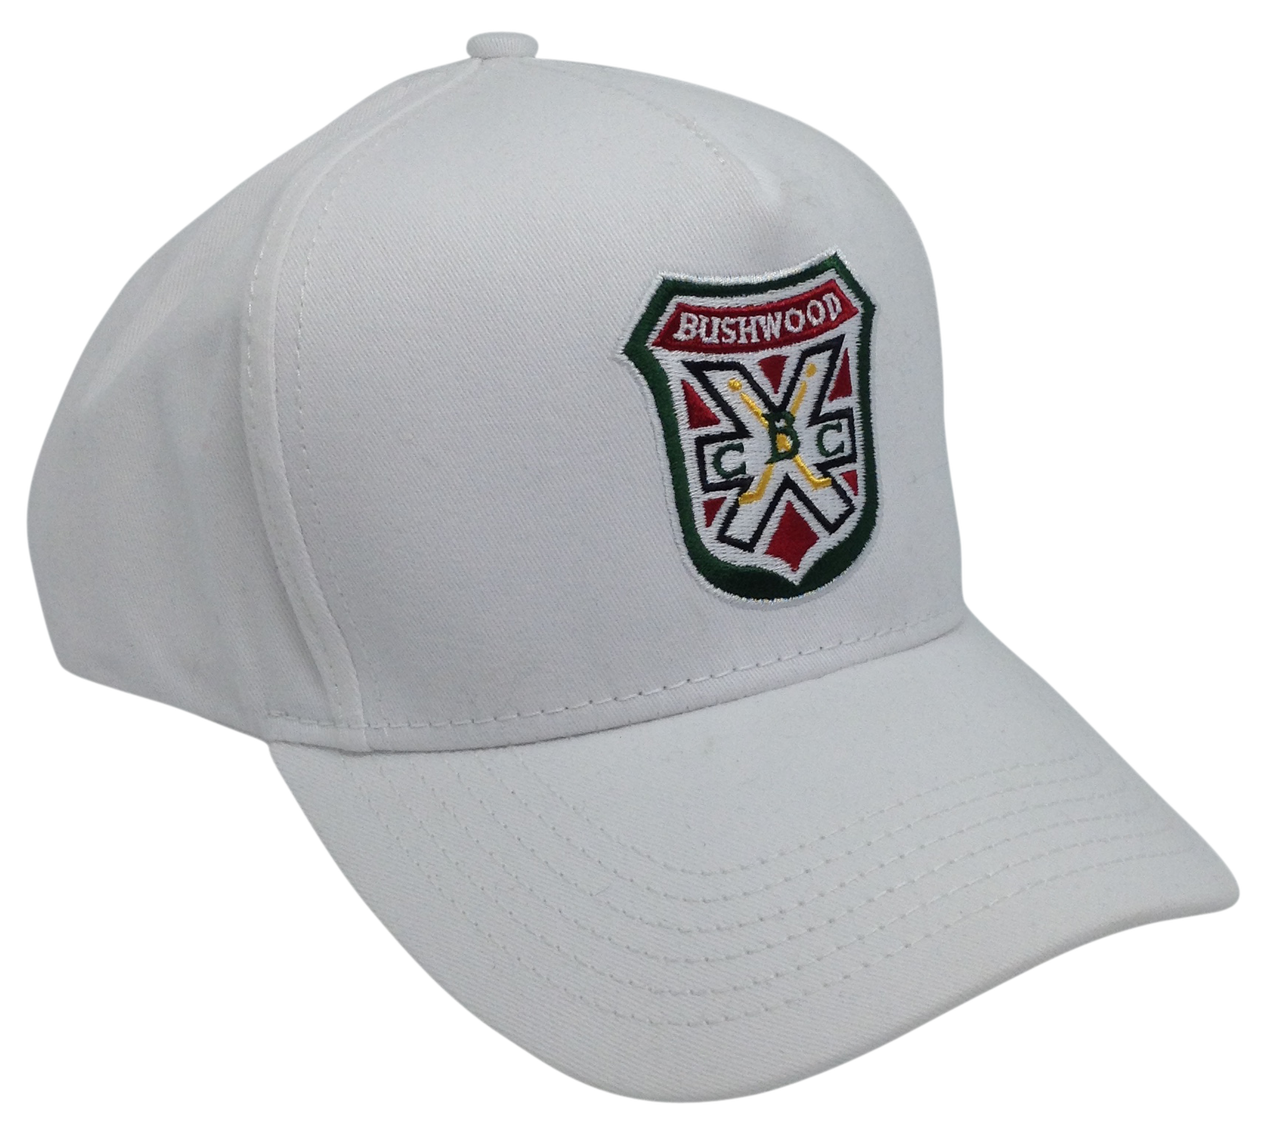 Caddyshack - Bushwood Country Club Retro Snapback Golf Hat - White ebed0f1fc388